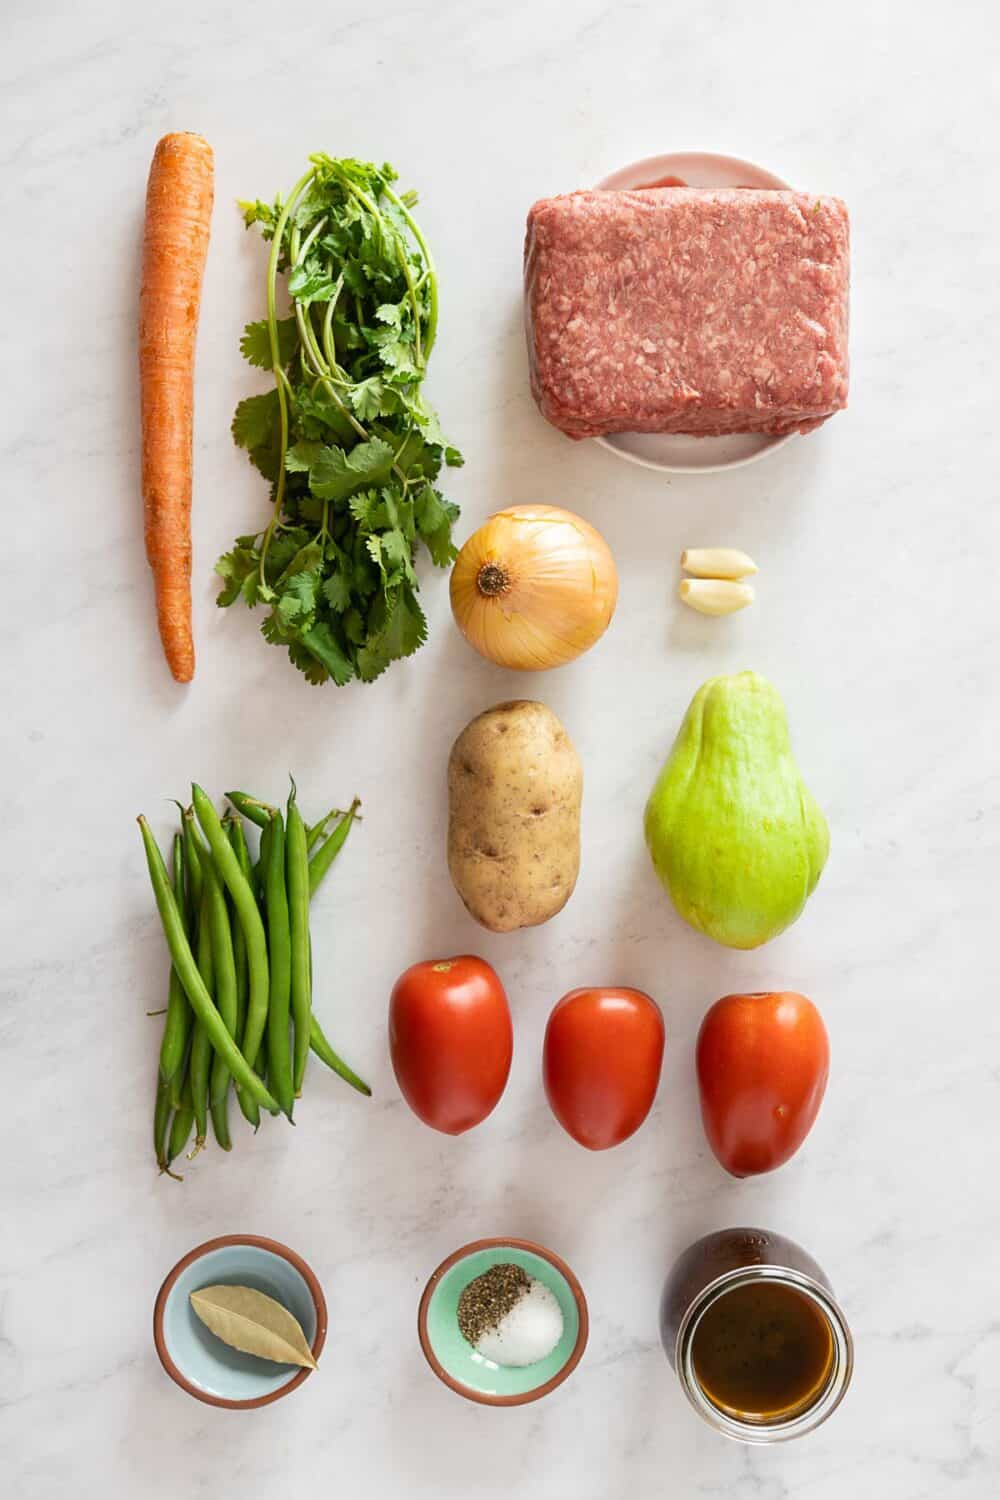 All ingredients required to make Mexican Picadillo on a kitchen counter.